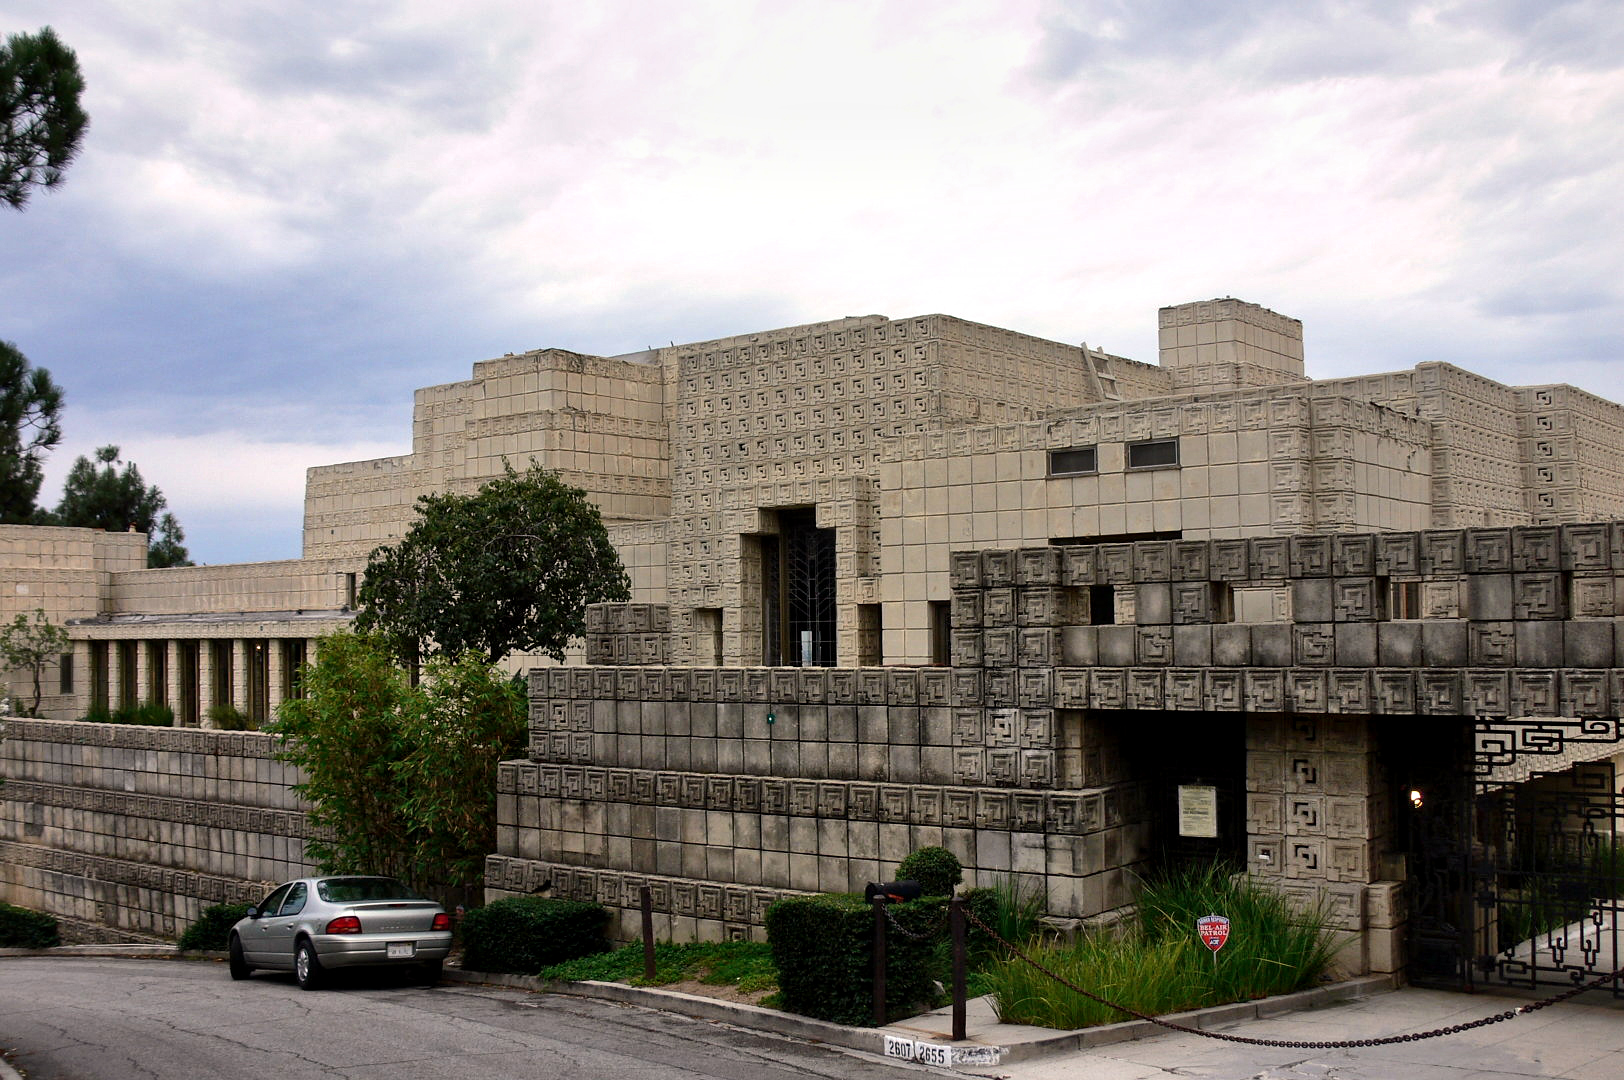 File:Ennis House front view 2005.jpg - Wikimedia Commons